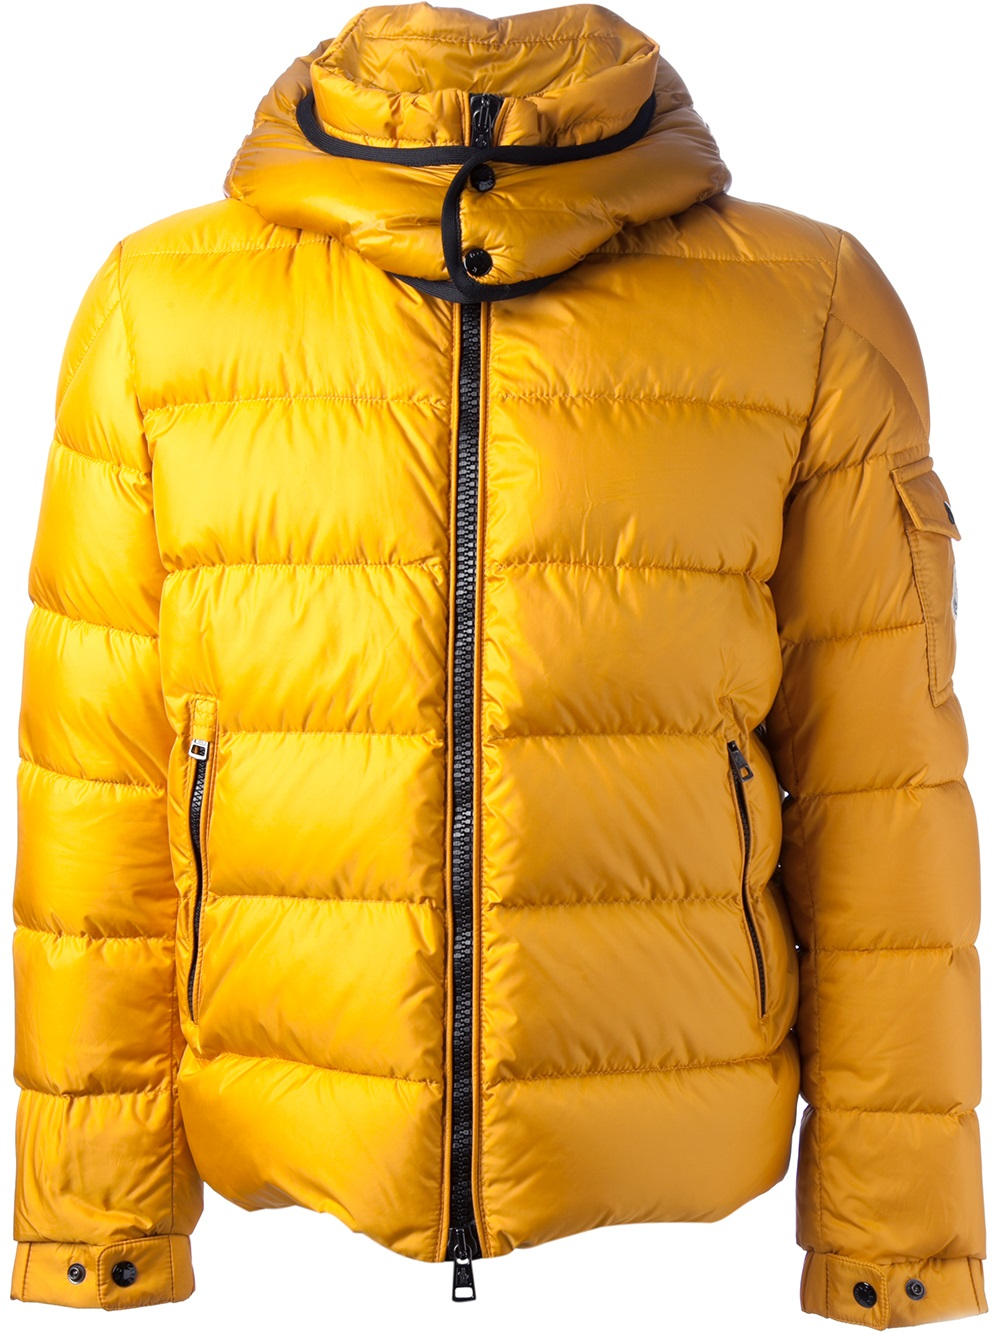 moncler hoodie yellow